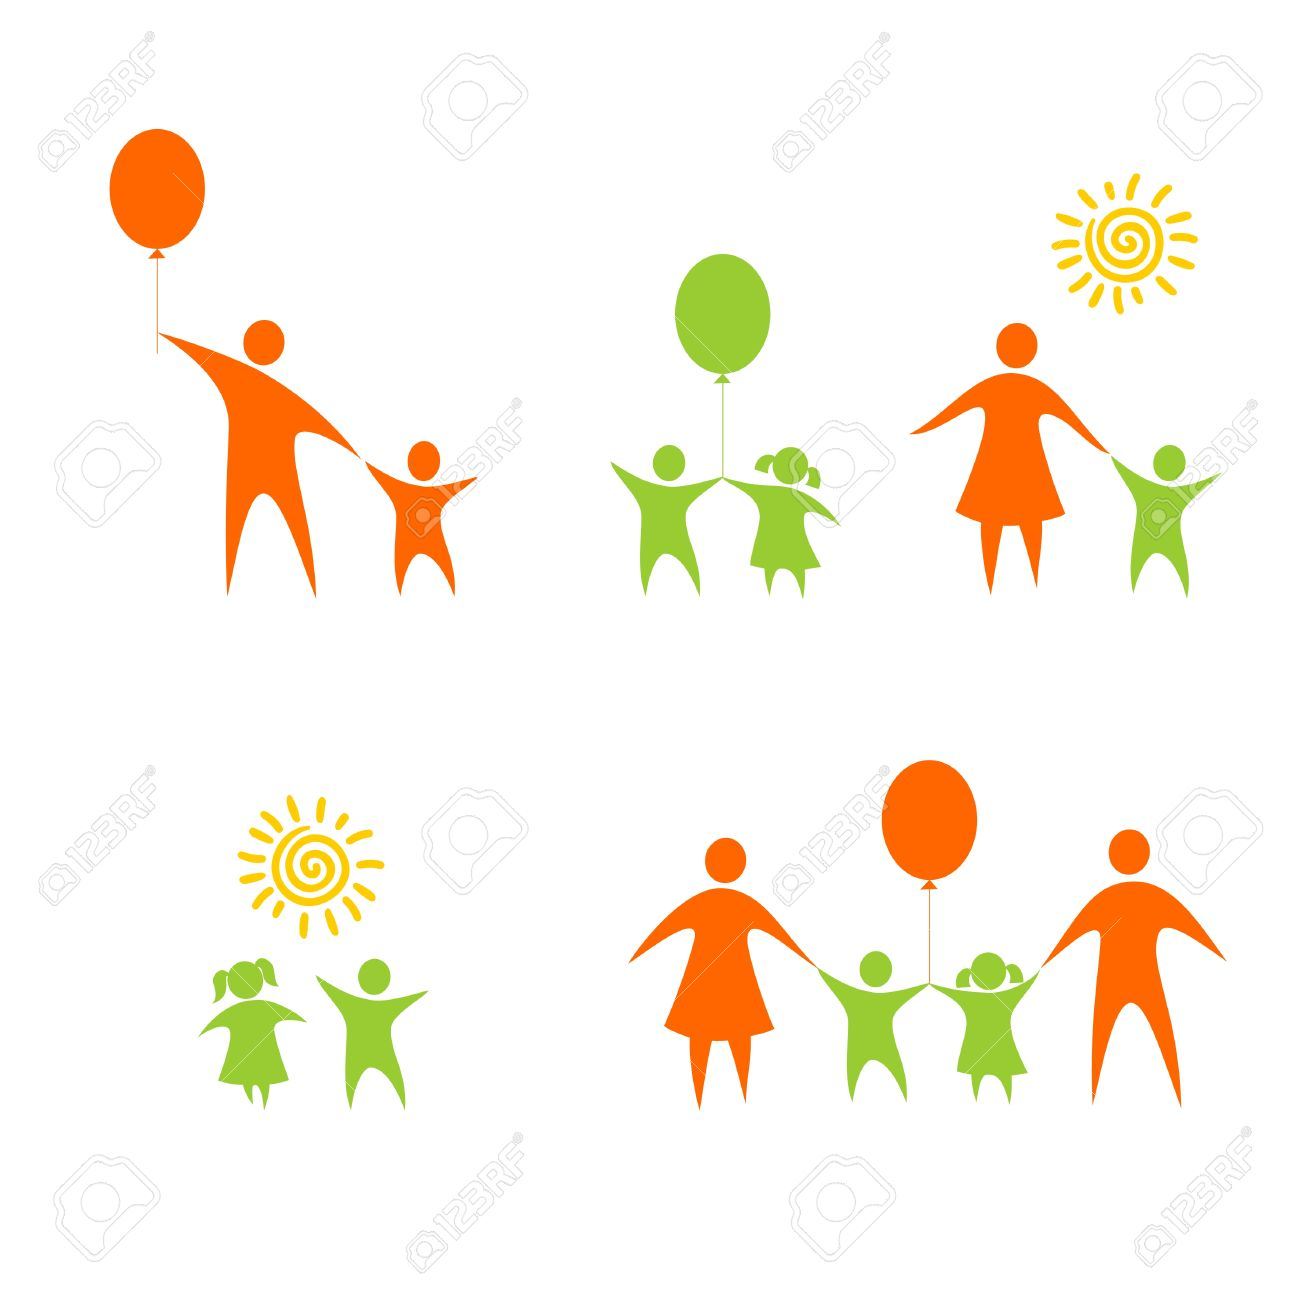 Figures Of Children And Parents On A White Background Royalty 1300x1300